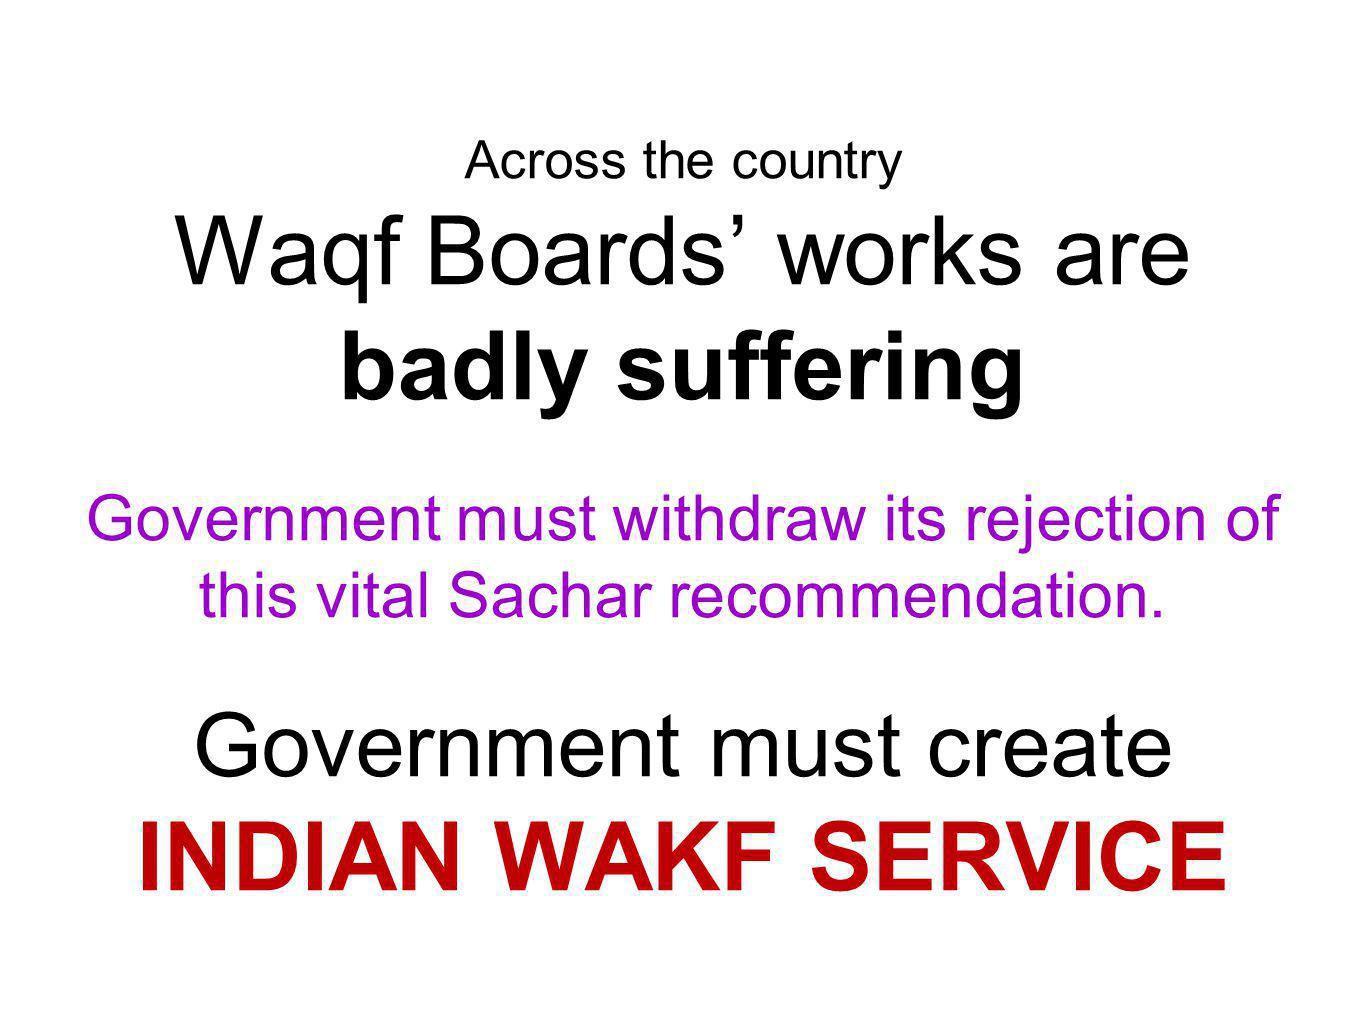 Across the country Waqf Boards works are badly suffering Government must withdraw its rejection of this vital Sachar recommendation.